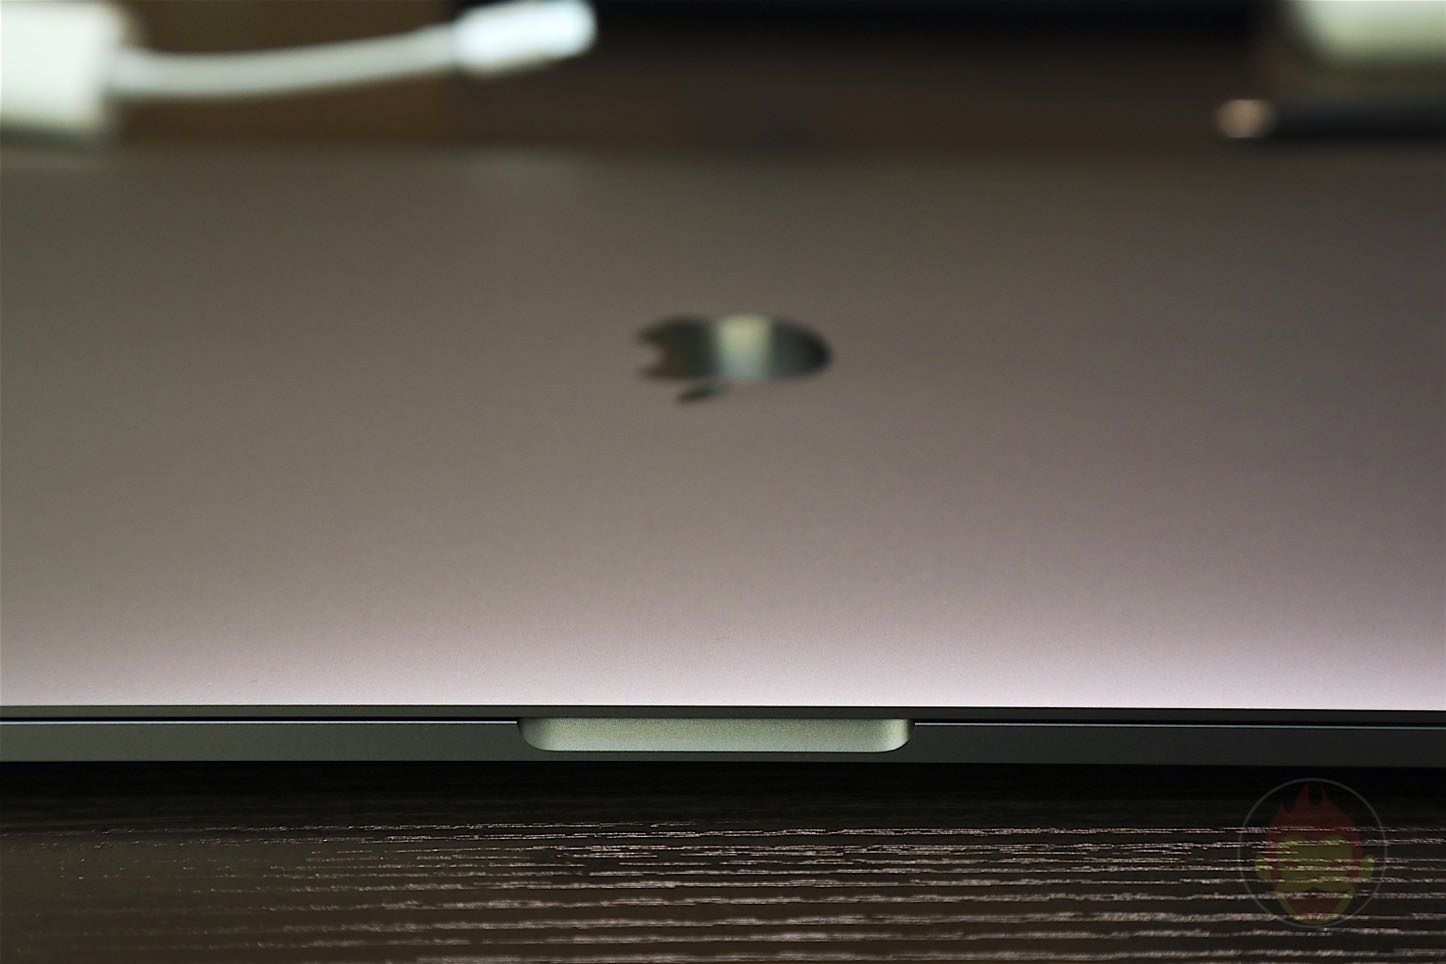 MacBook-Pro-Late-2016-15inch-model-18.jpg